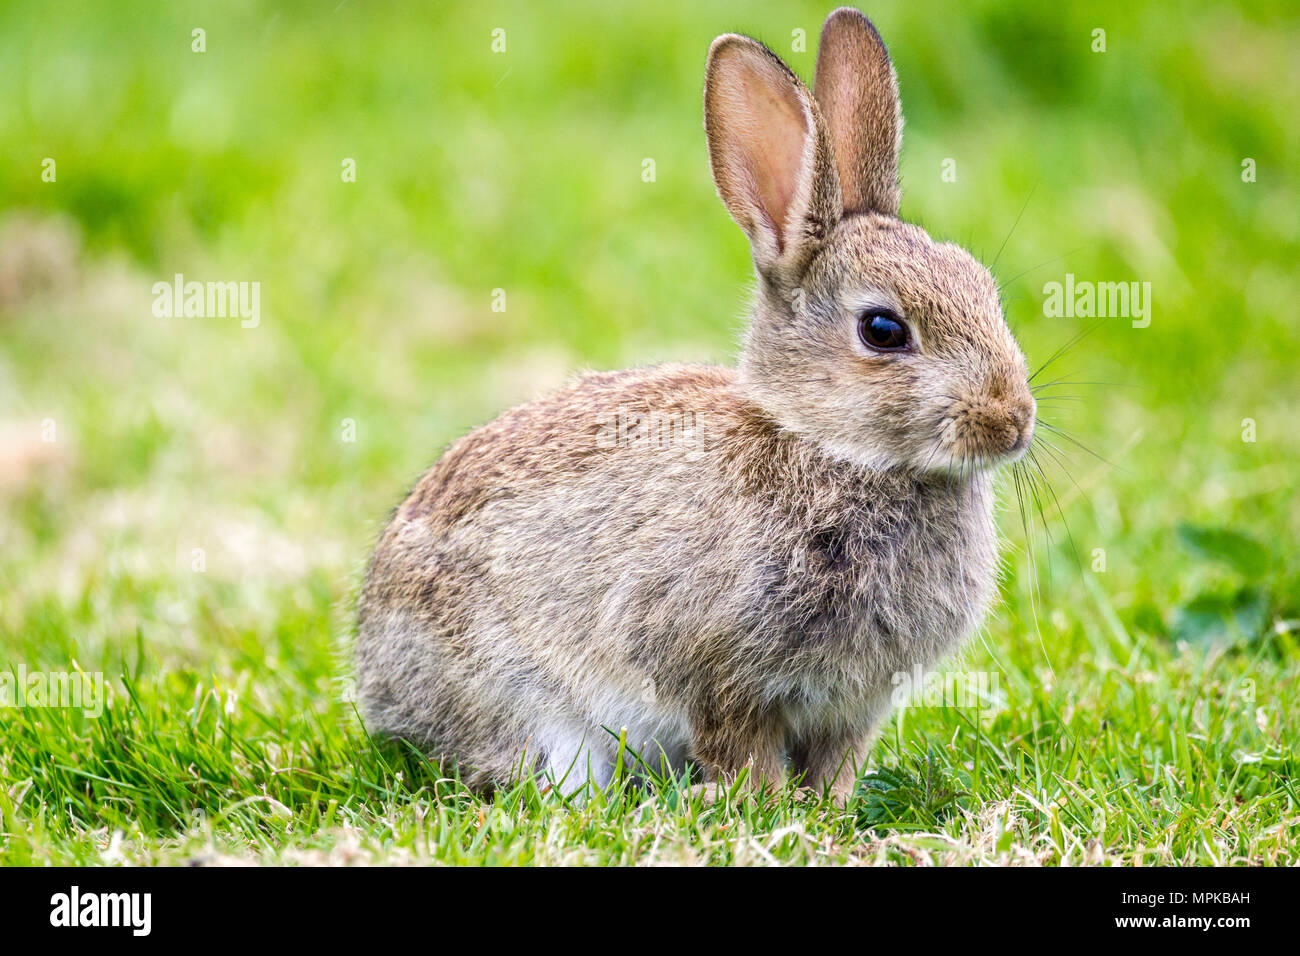 Wild Rabbits in the English countrside. - Stock Image